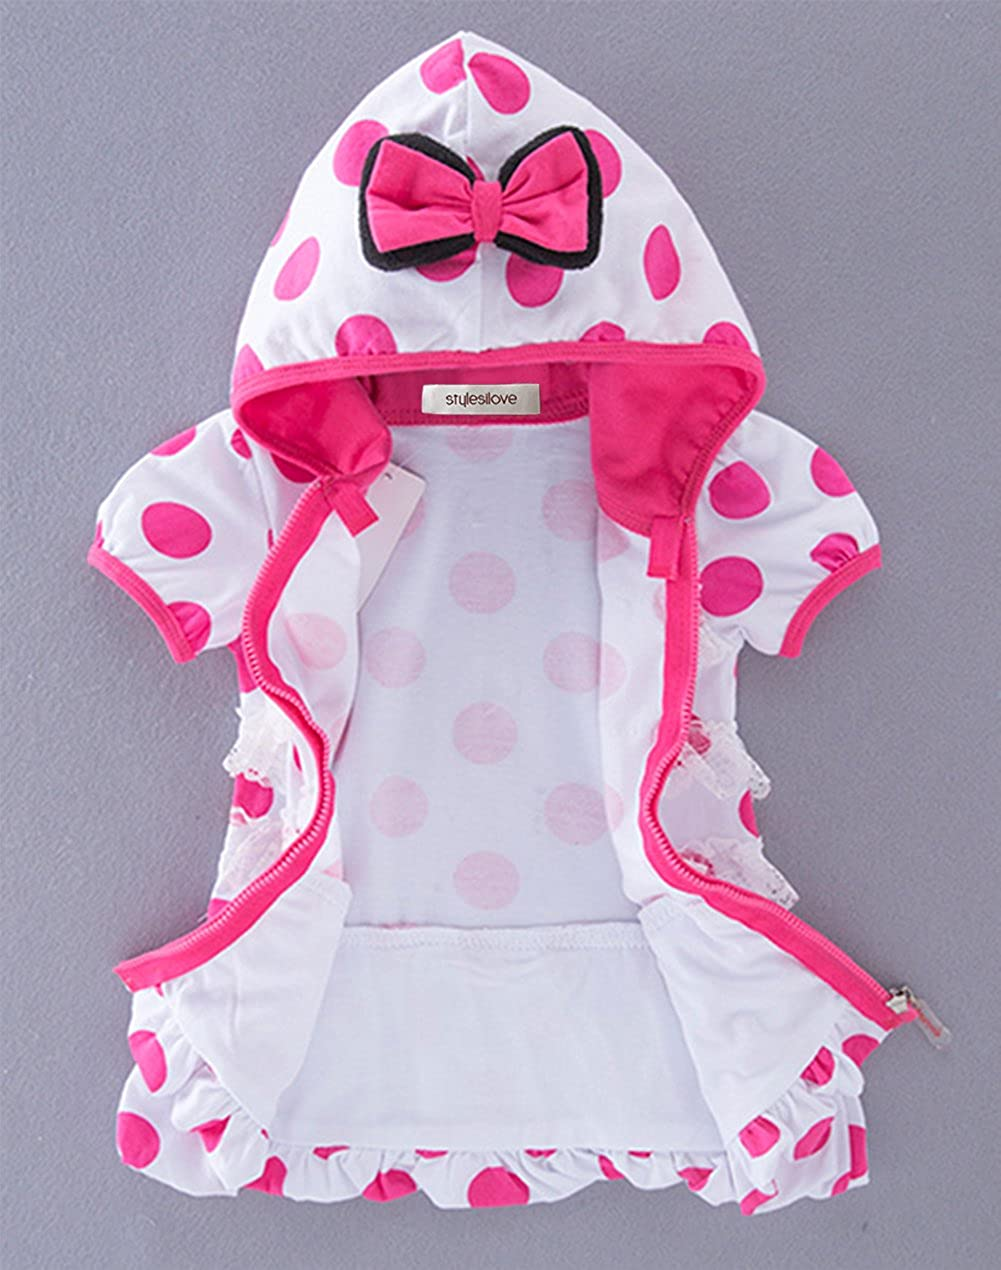 stylesilove Hot Pink Polka Dot Minnie Baby Girl Short Sleeves Hoodie Jacket